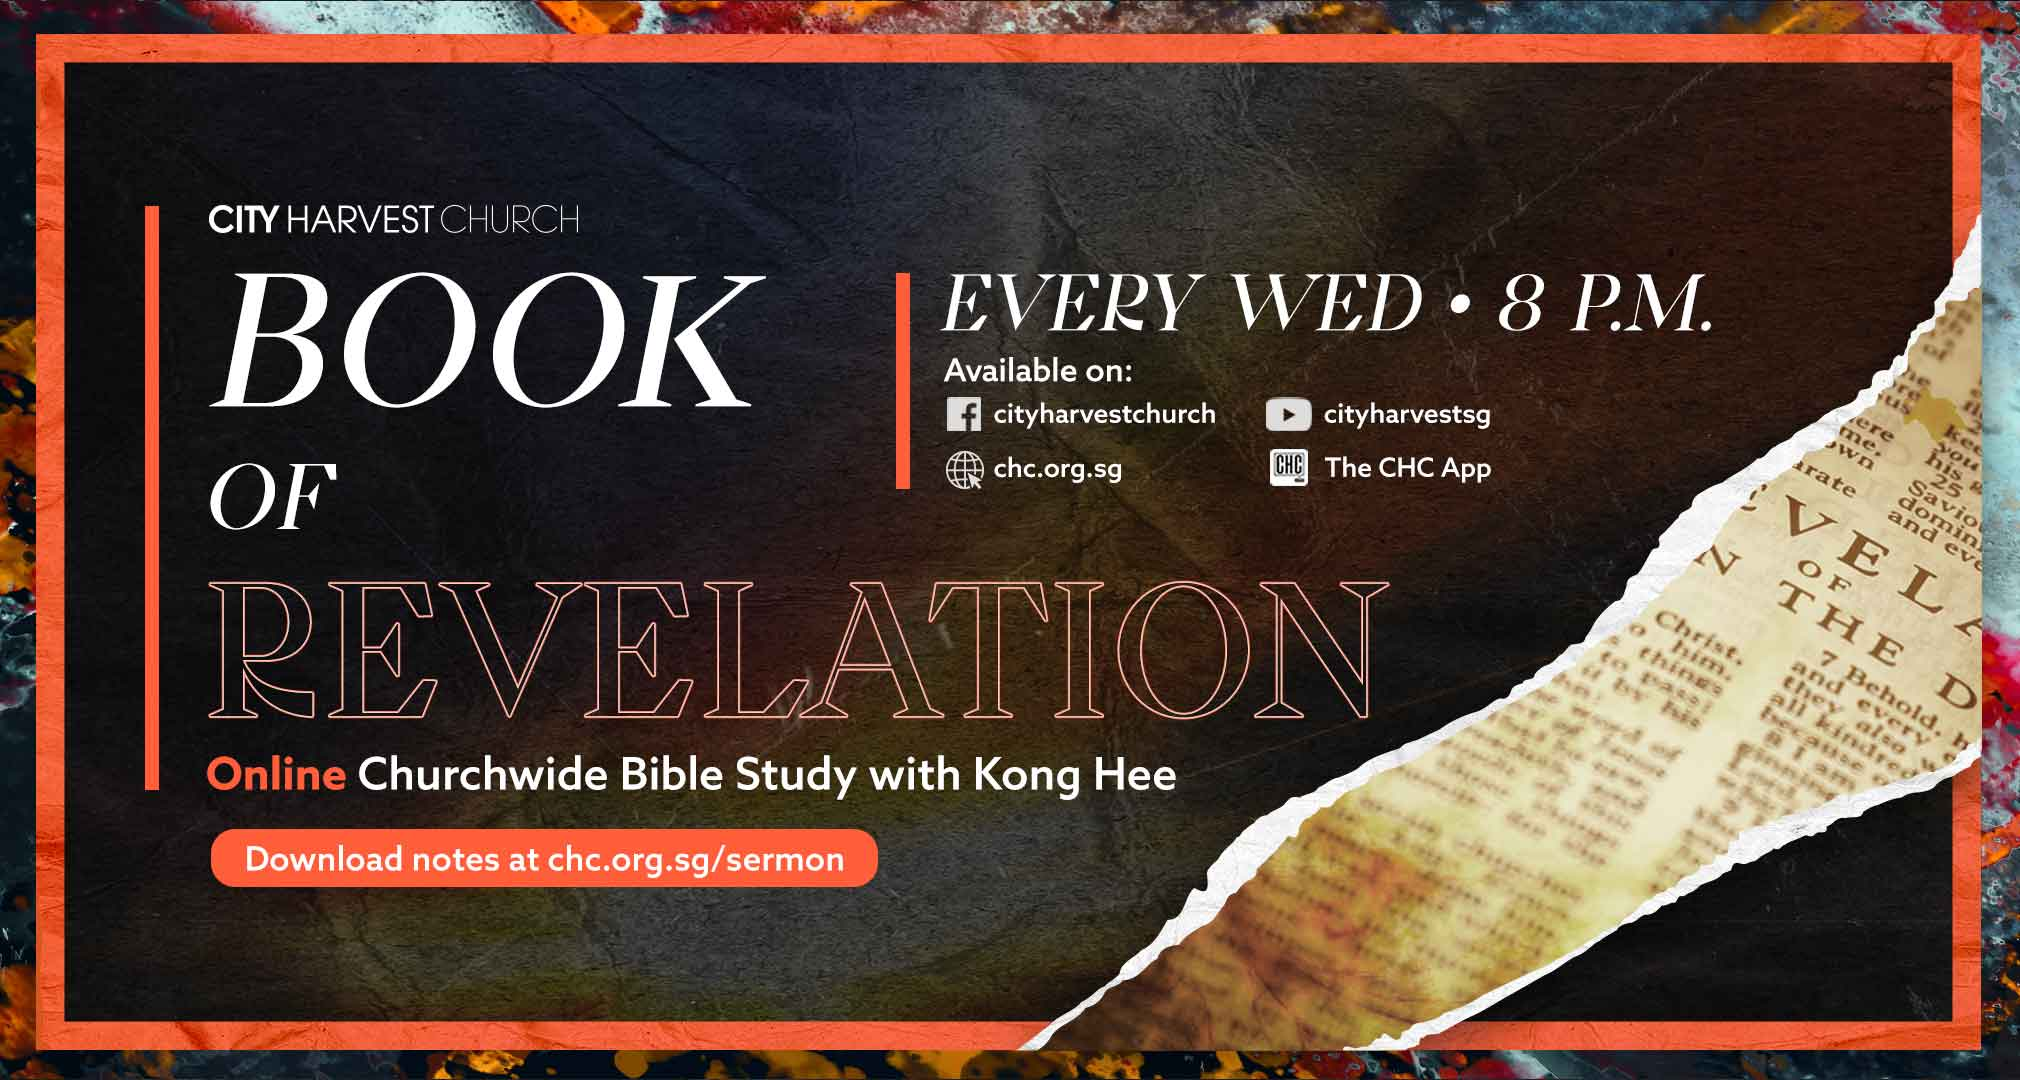 Book of Revelation - Online Churchwide Bible Study with Kong Hee